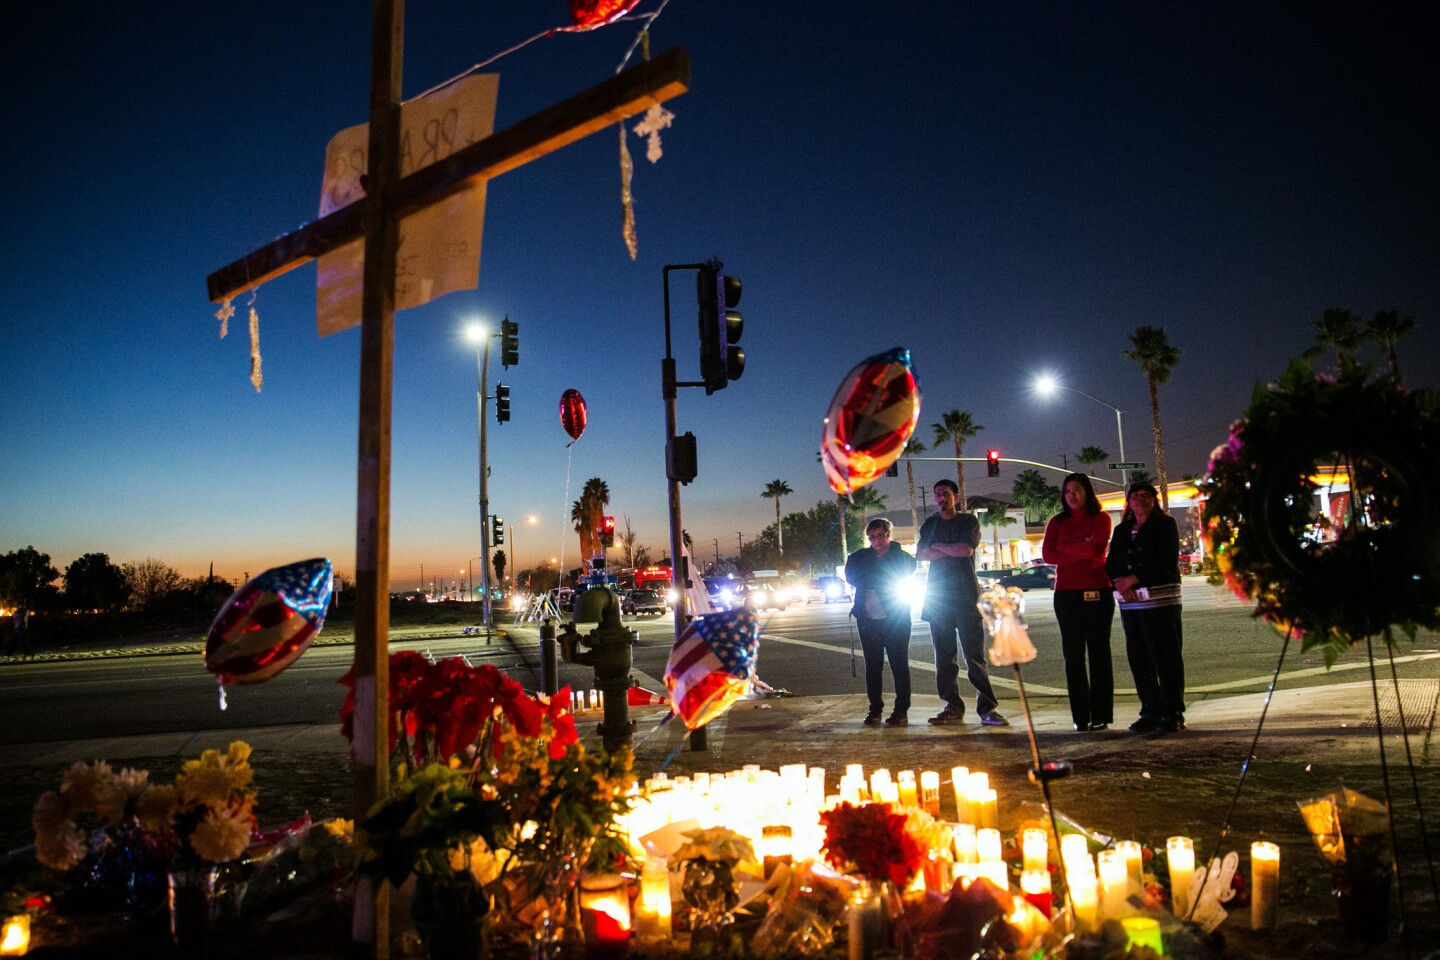 A memorial site for the victims of the mass shooting in San Bernardino, Calif., on Dec. 4, 2015.